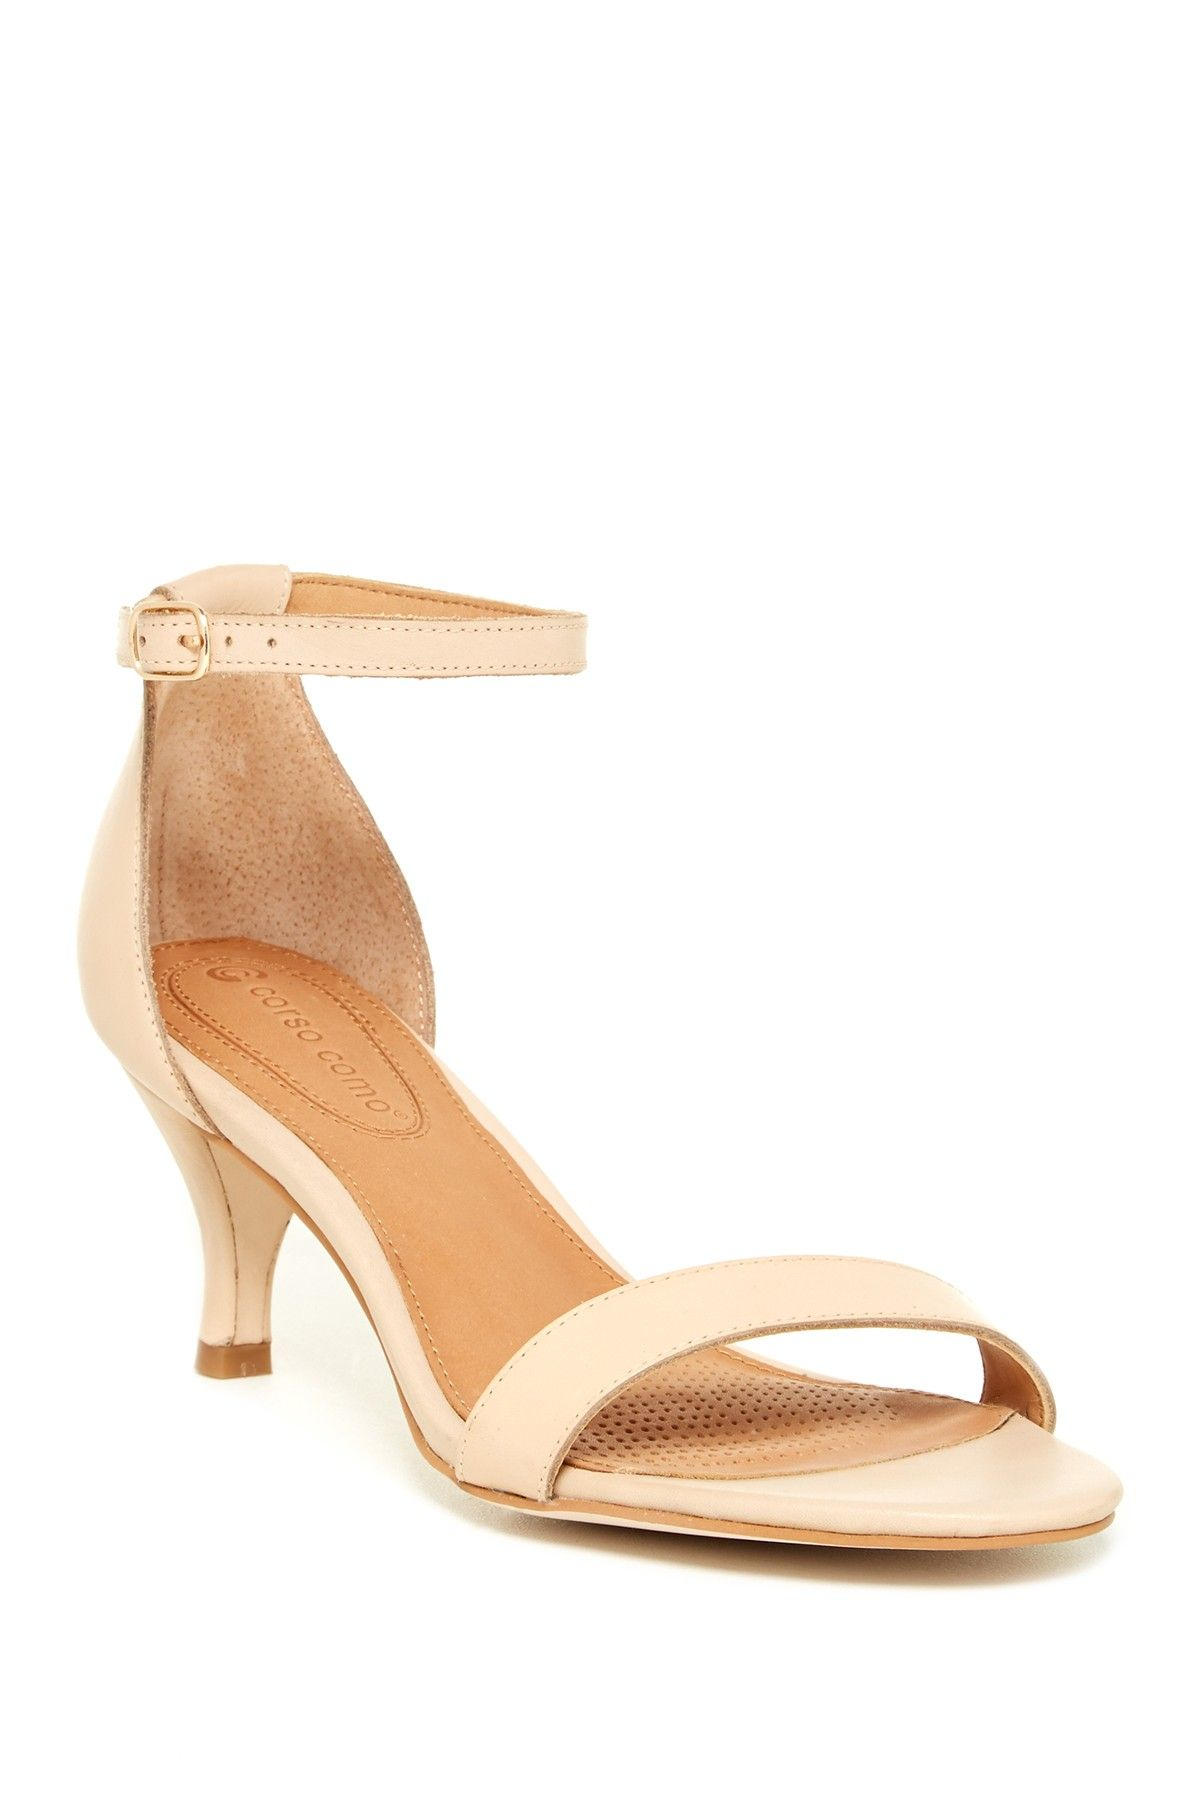 Ankle These Heel Days Low Strap SandalsShoes For Love Nude kw0nOP